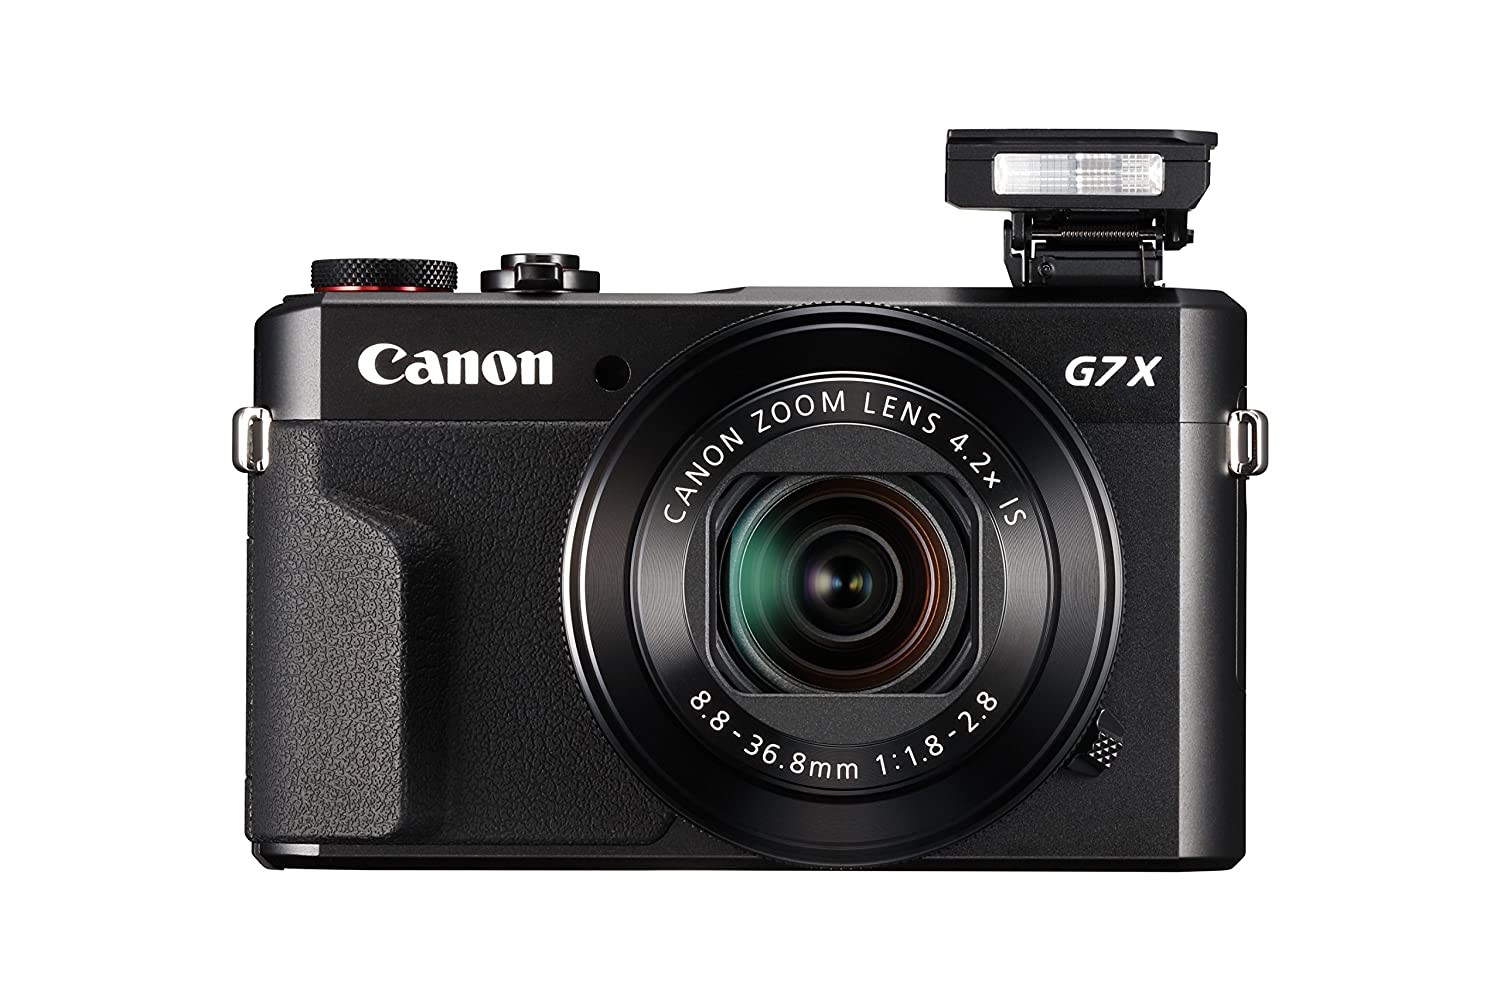 Canon Powershot Digital Camera G7 X Mark Ii With Wi Select To See Larger Image We Have Considerable Experience Repairing Fi Nfc Lcd Screen And 1 Inch Sensor Black Photo